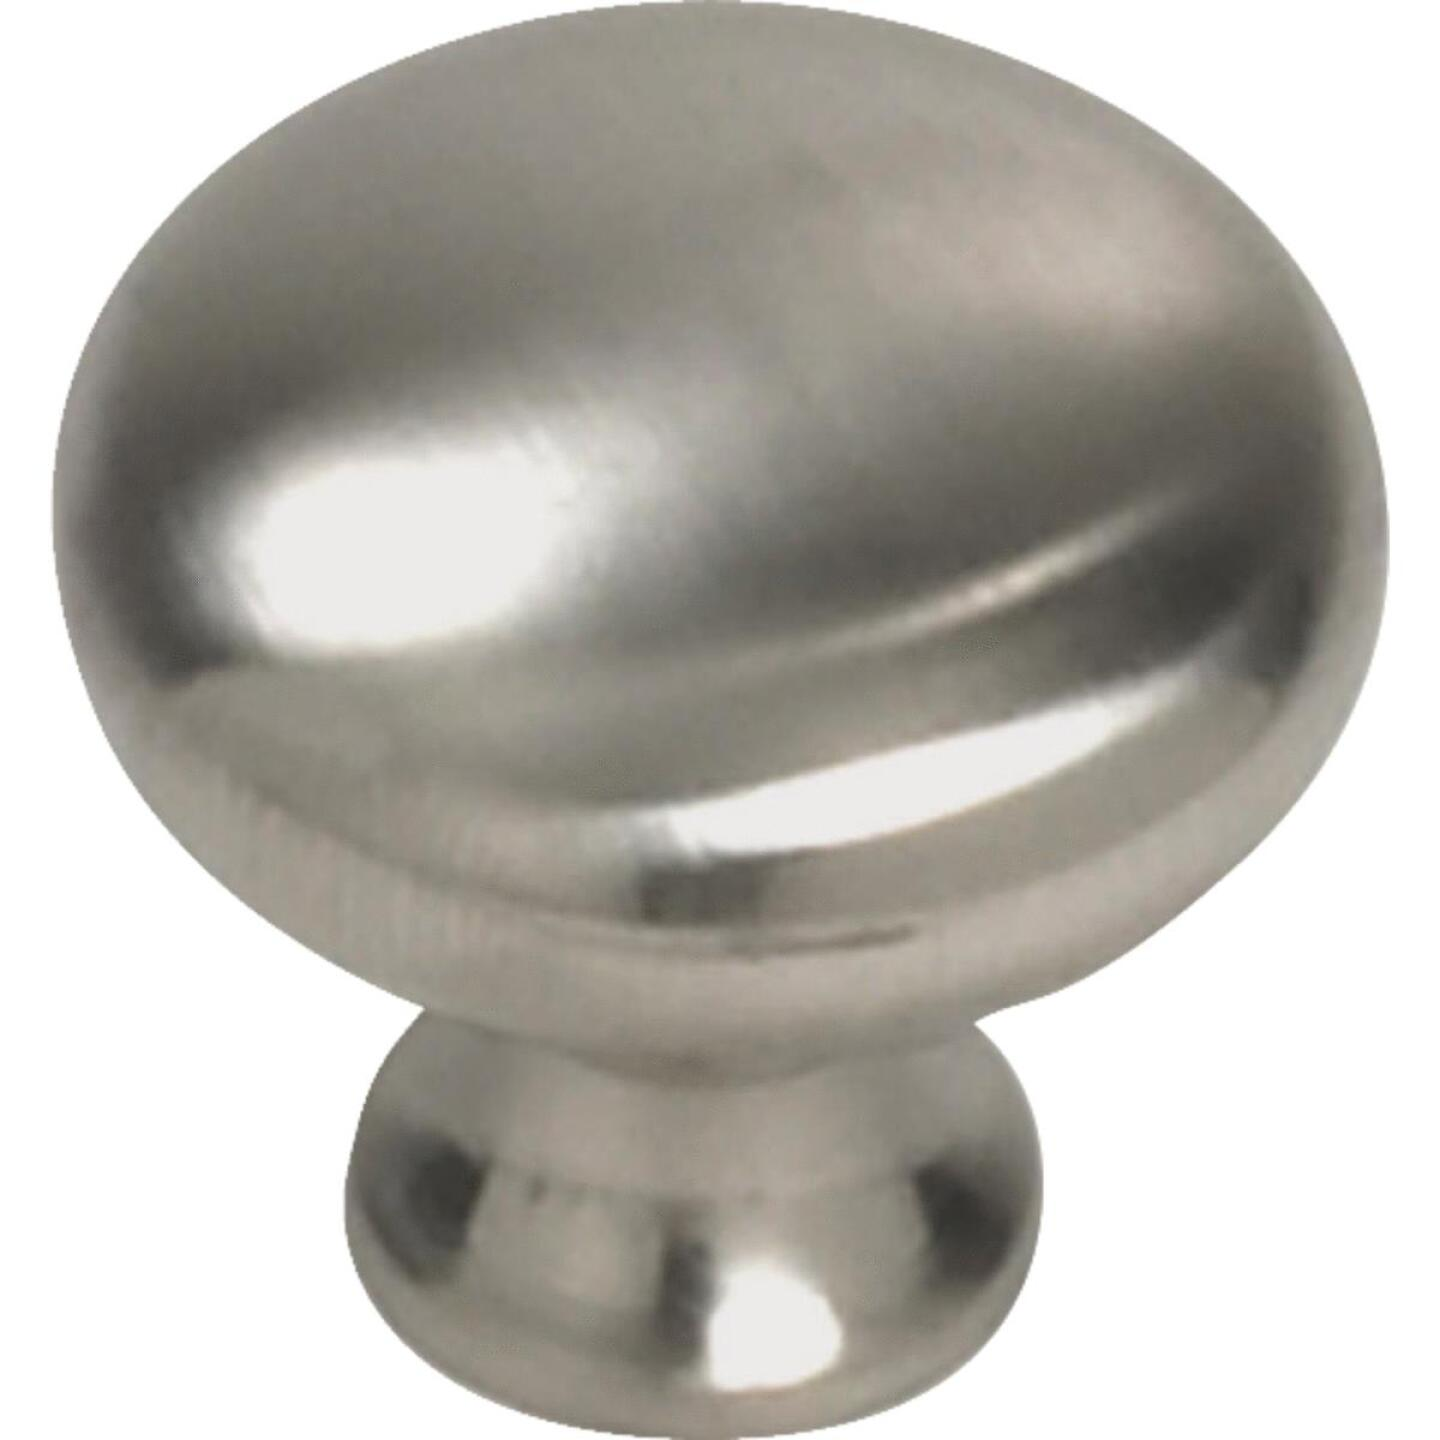 Laurey Satin Chrome 1-1/4 In. Cabinet Knob Image 1